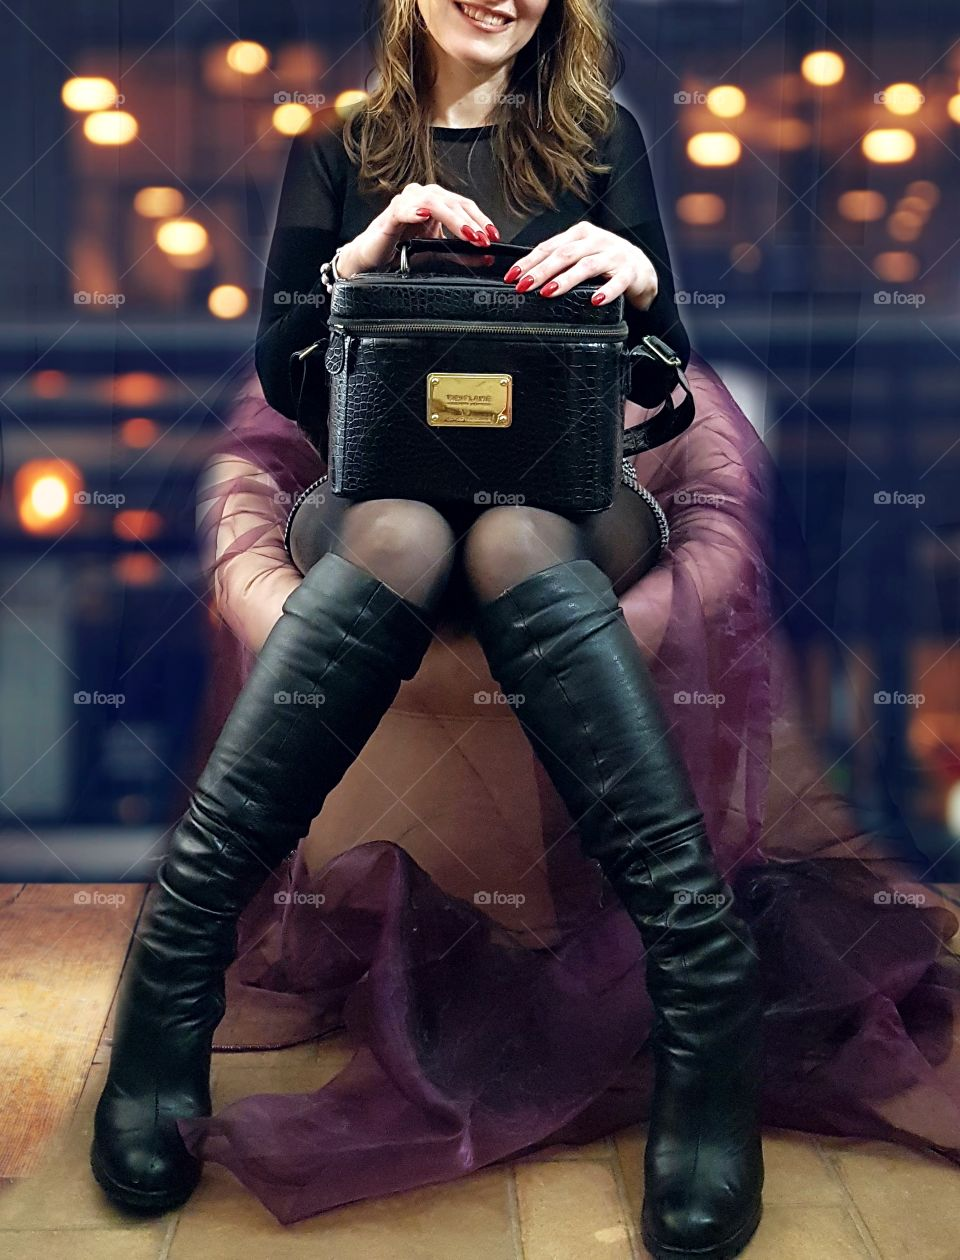 A beautiful girl in boots sits in a chair and holds a black suitcase